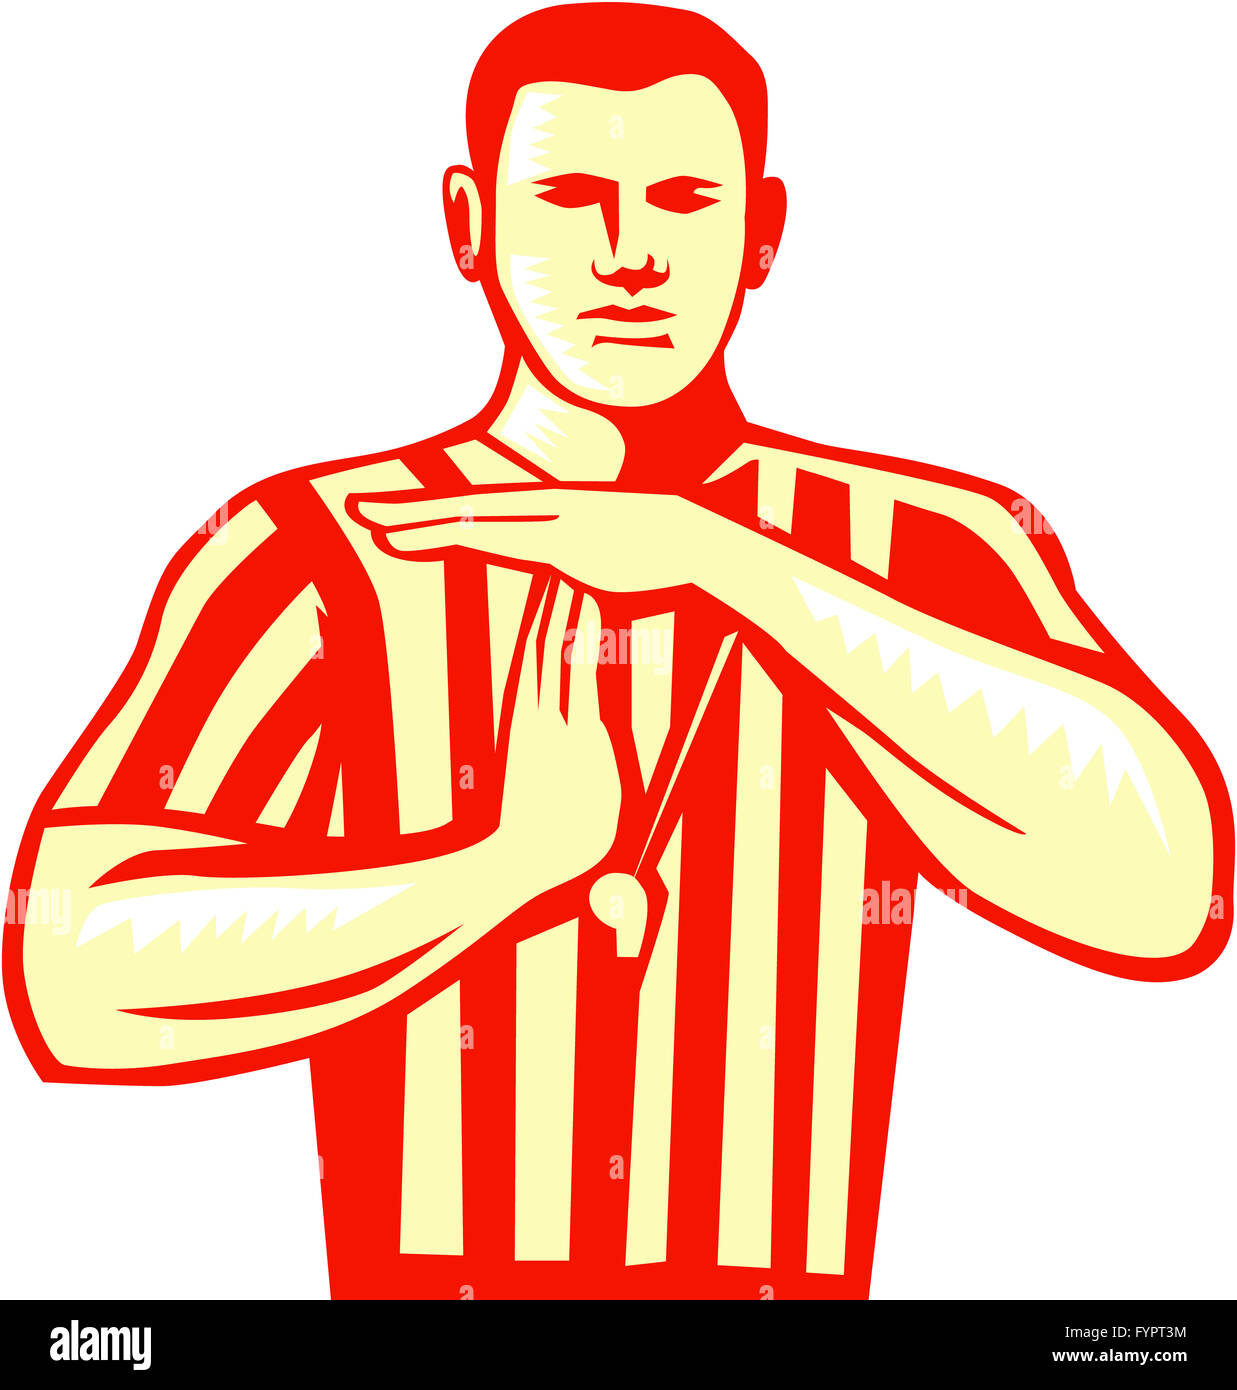 Basketball Referee Technical Foul Retro - Stock Image